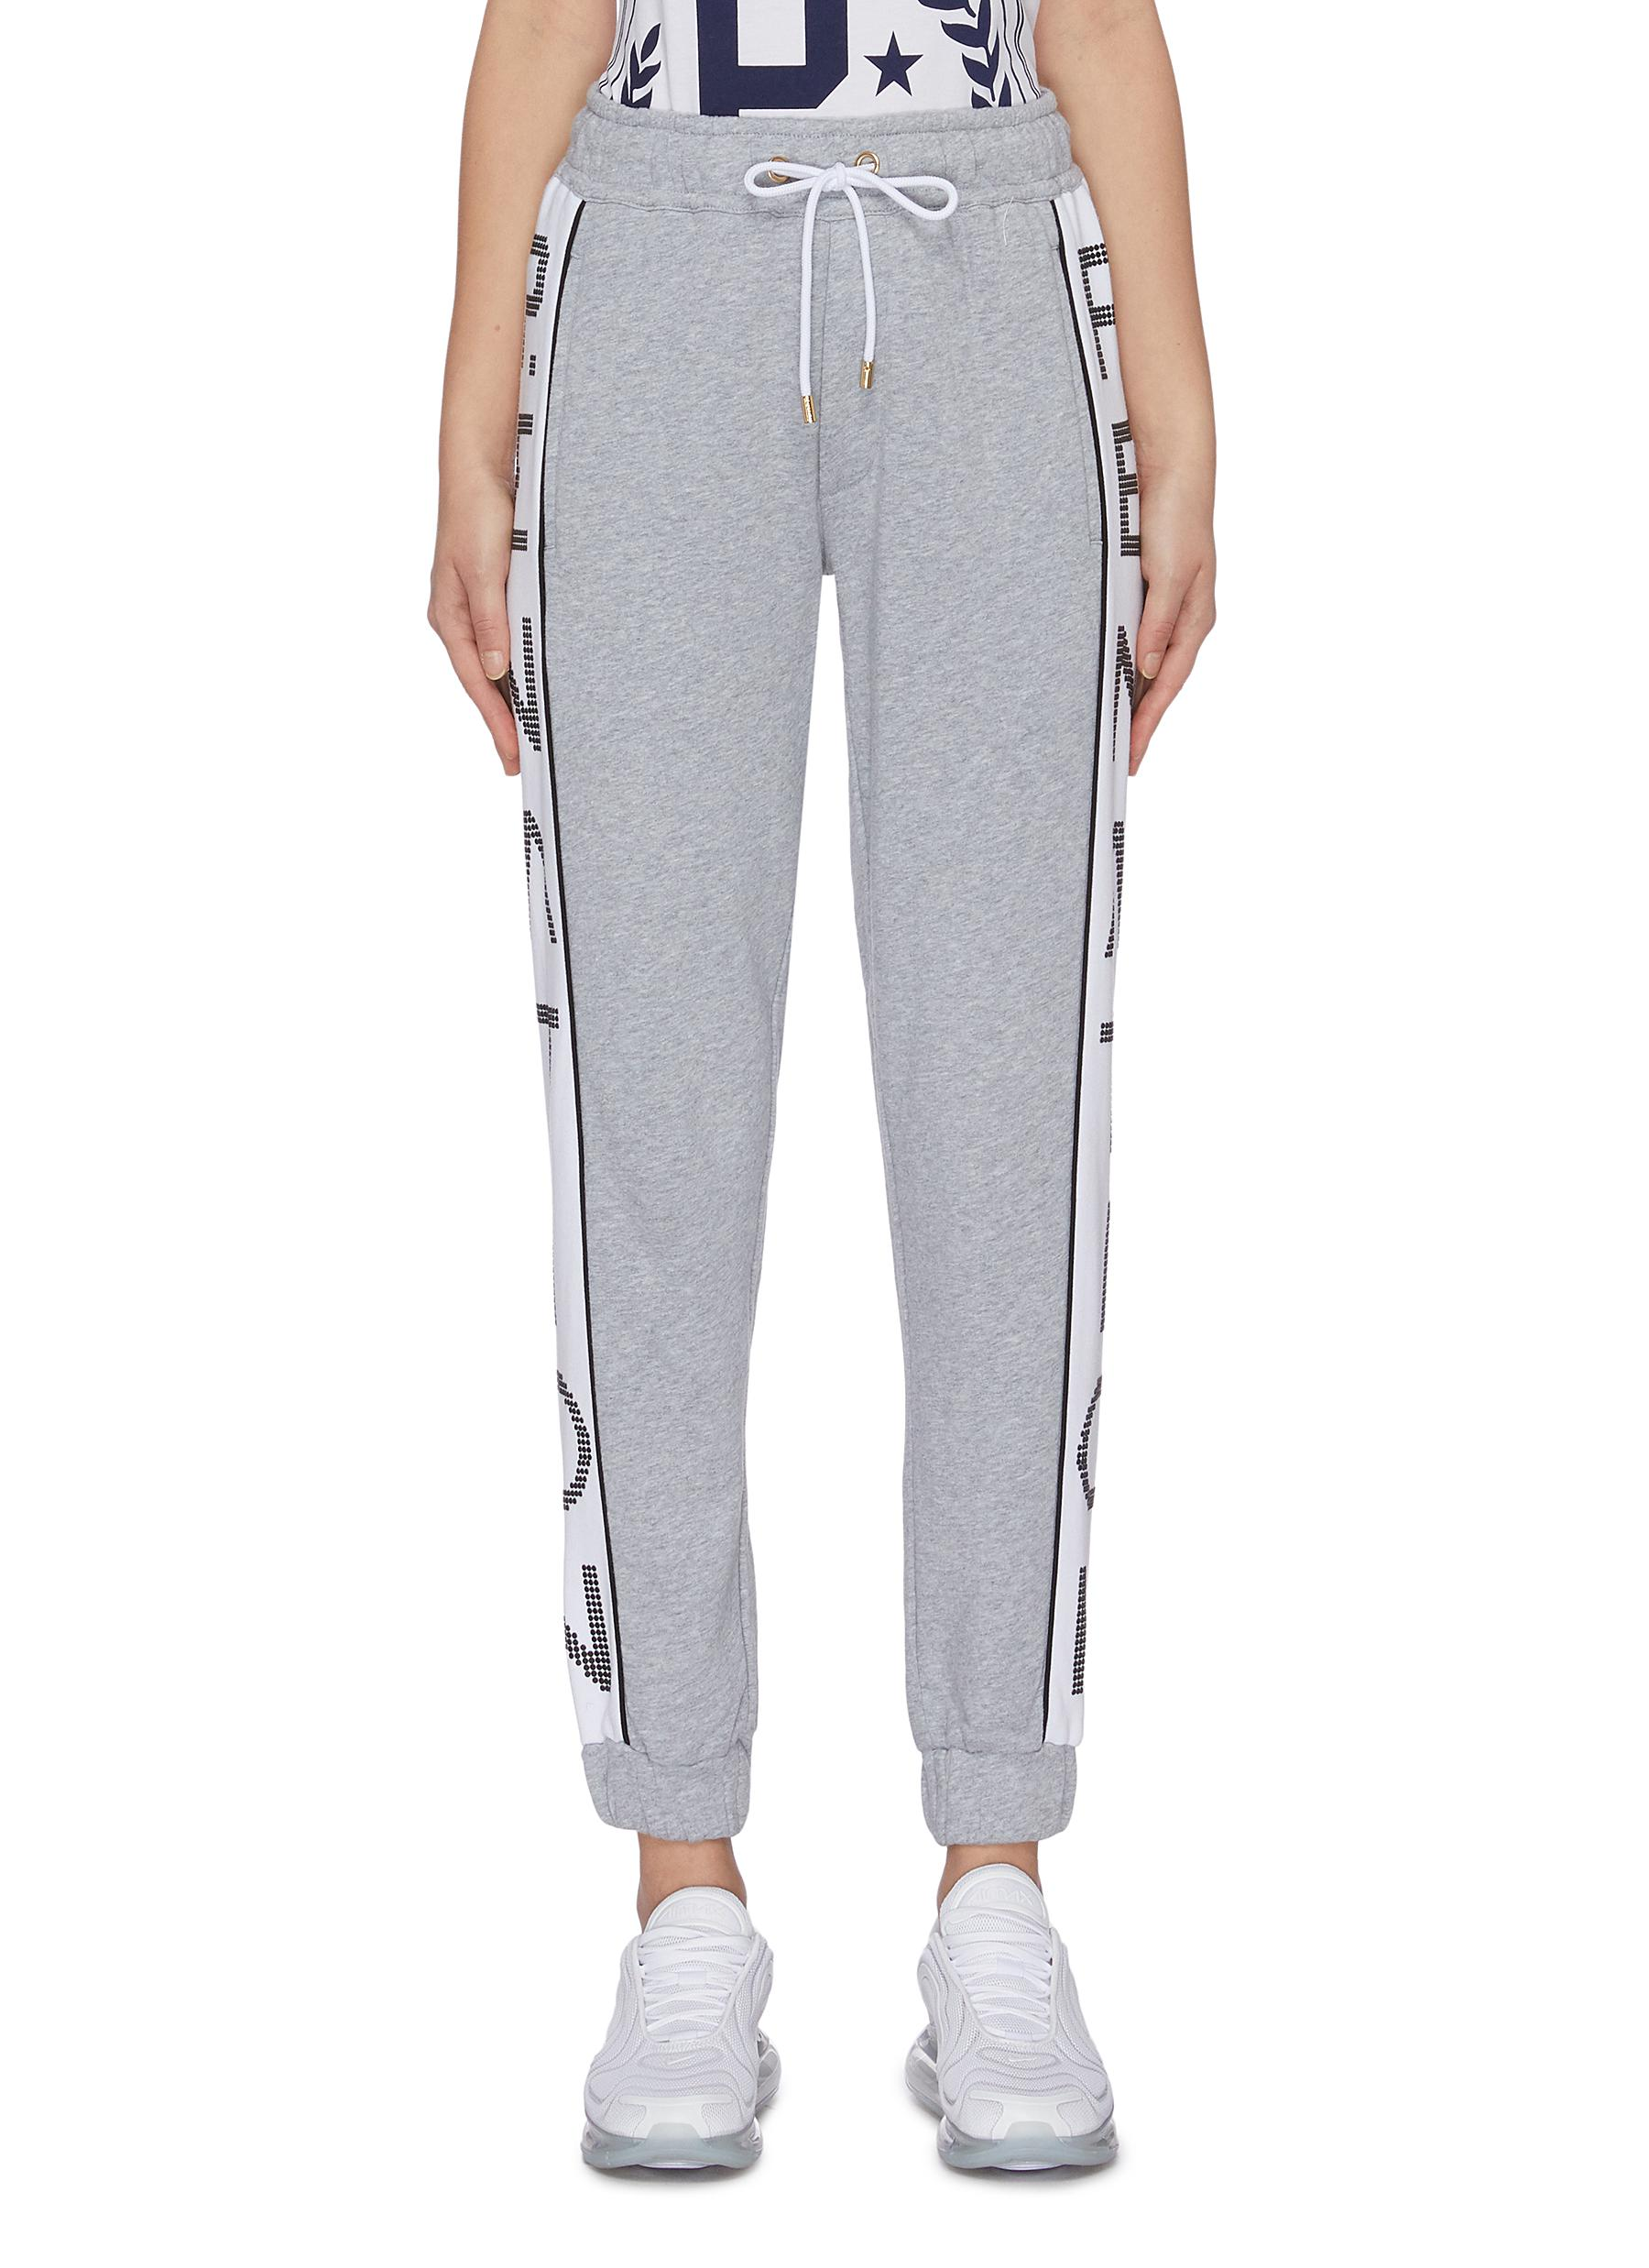 Easy Run logo outseam sweatpants by P.E Nation